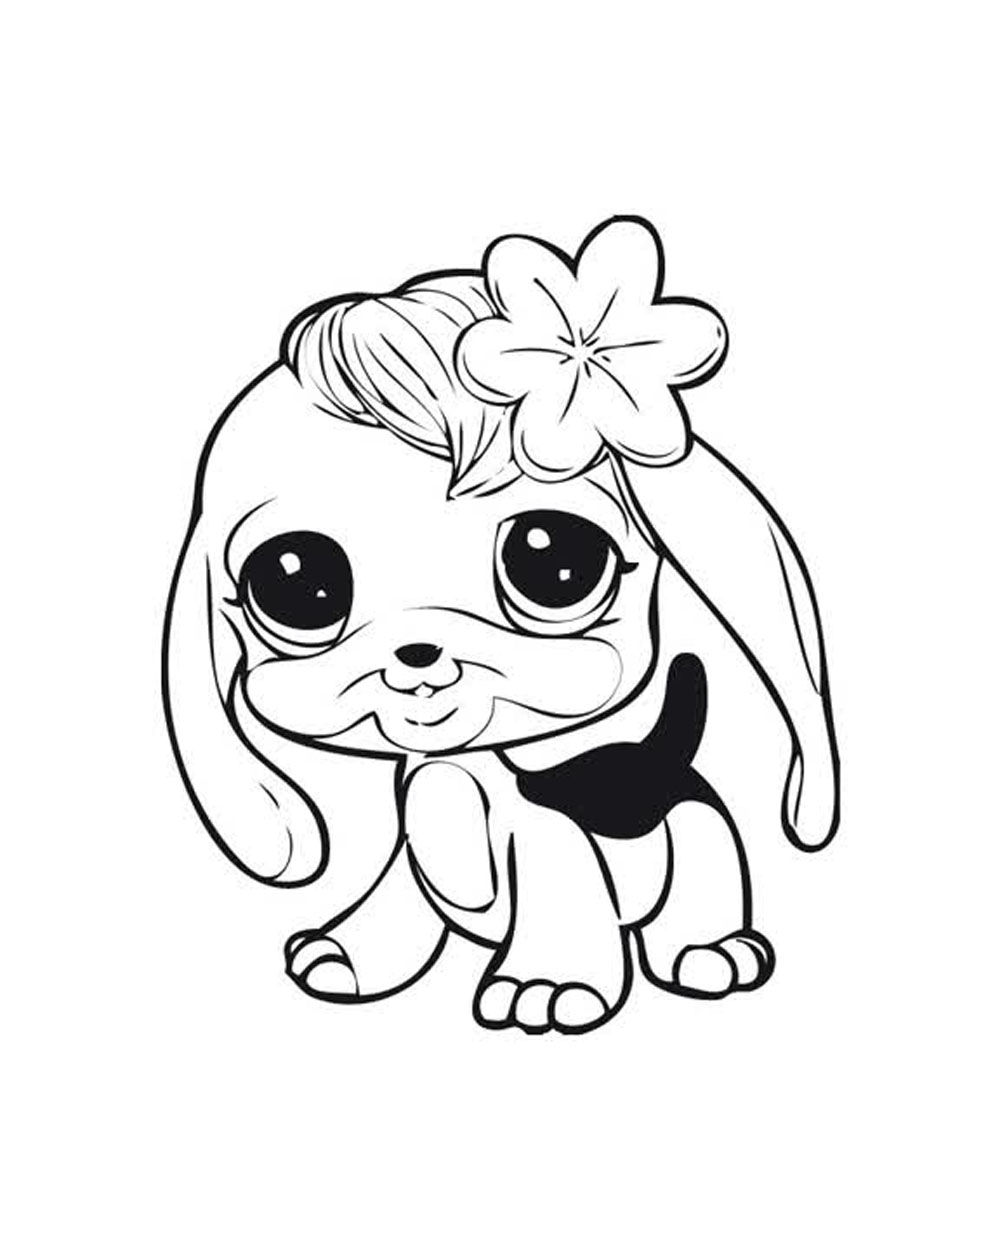 Littlest pet shops coloring page for my kids for Littlest pet shop coloring pages to color online